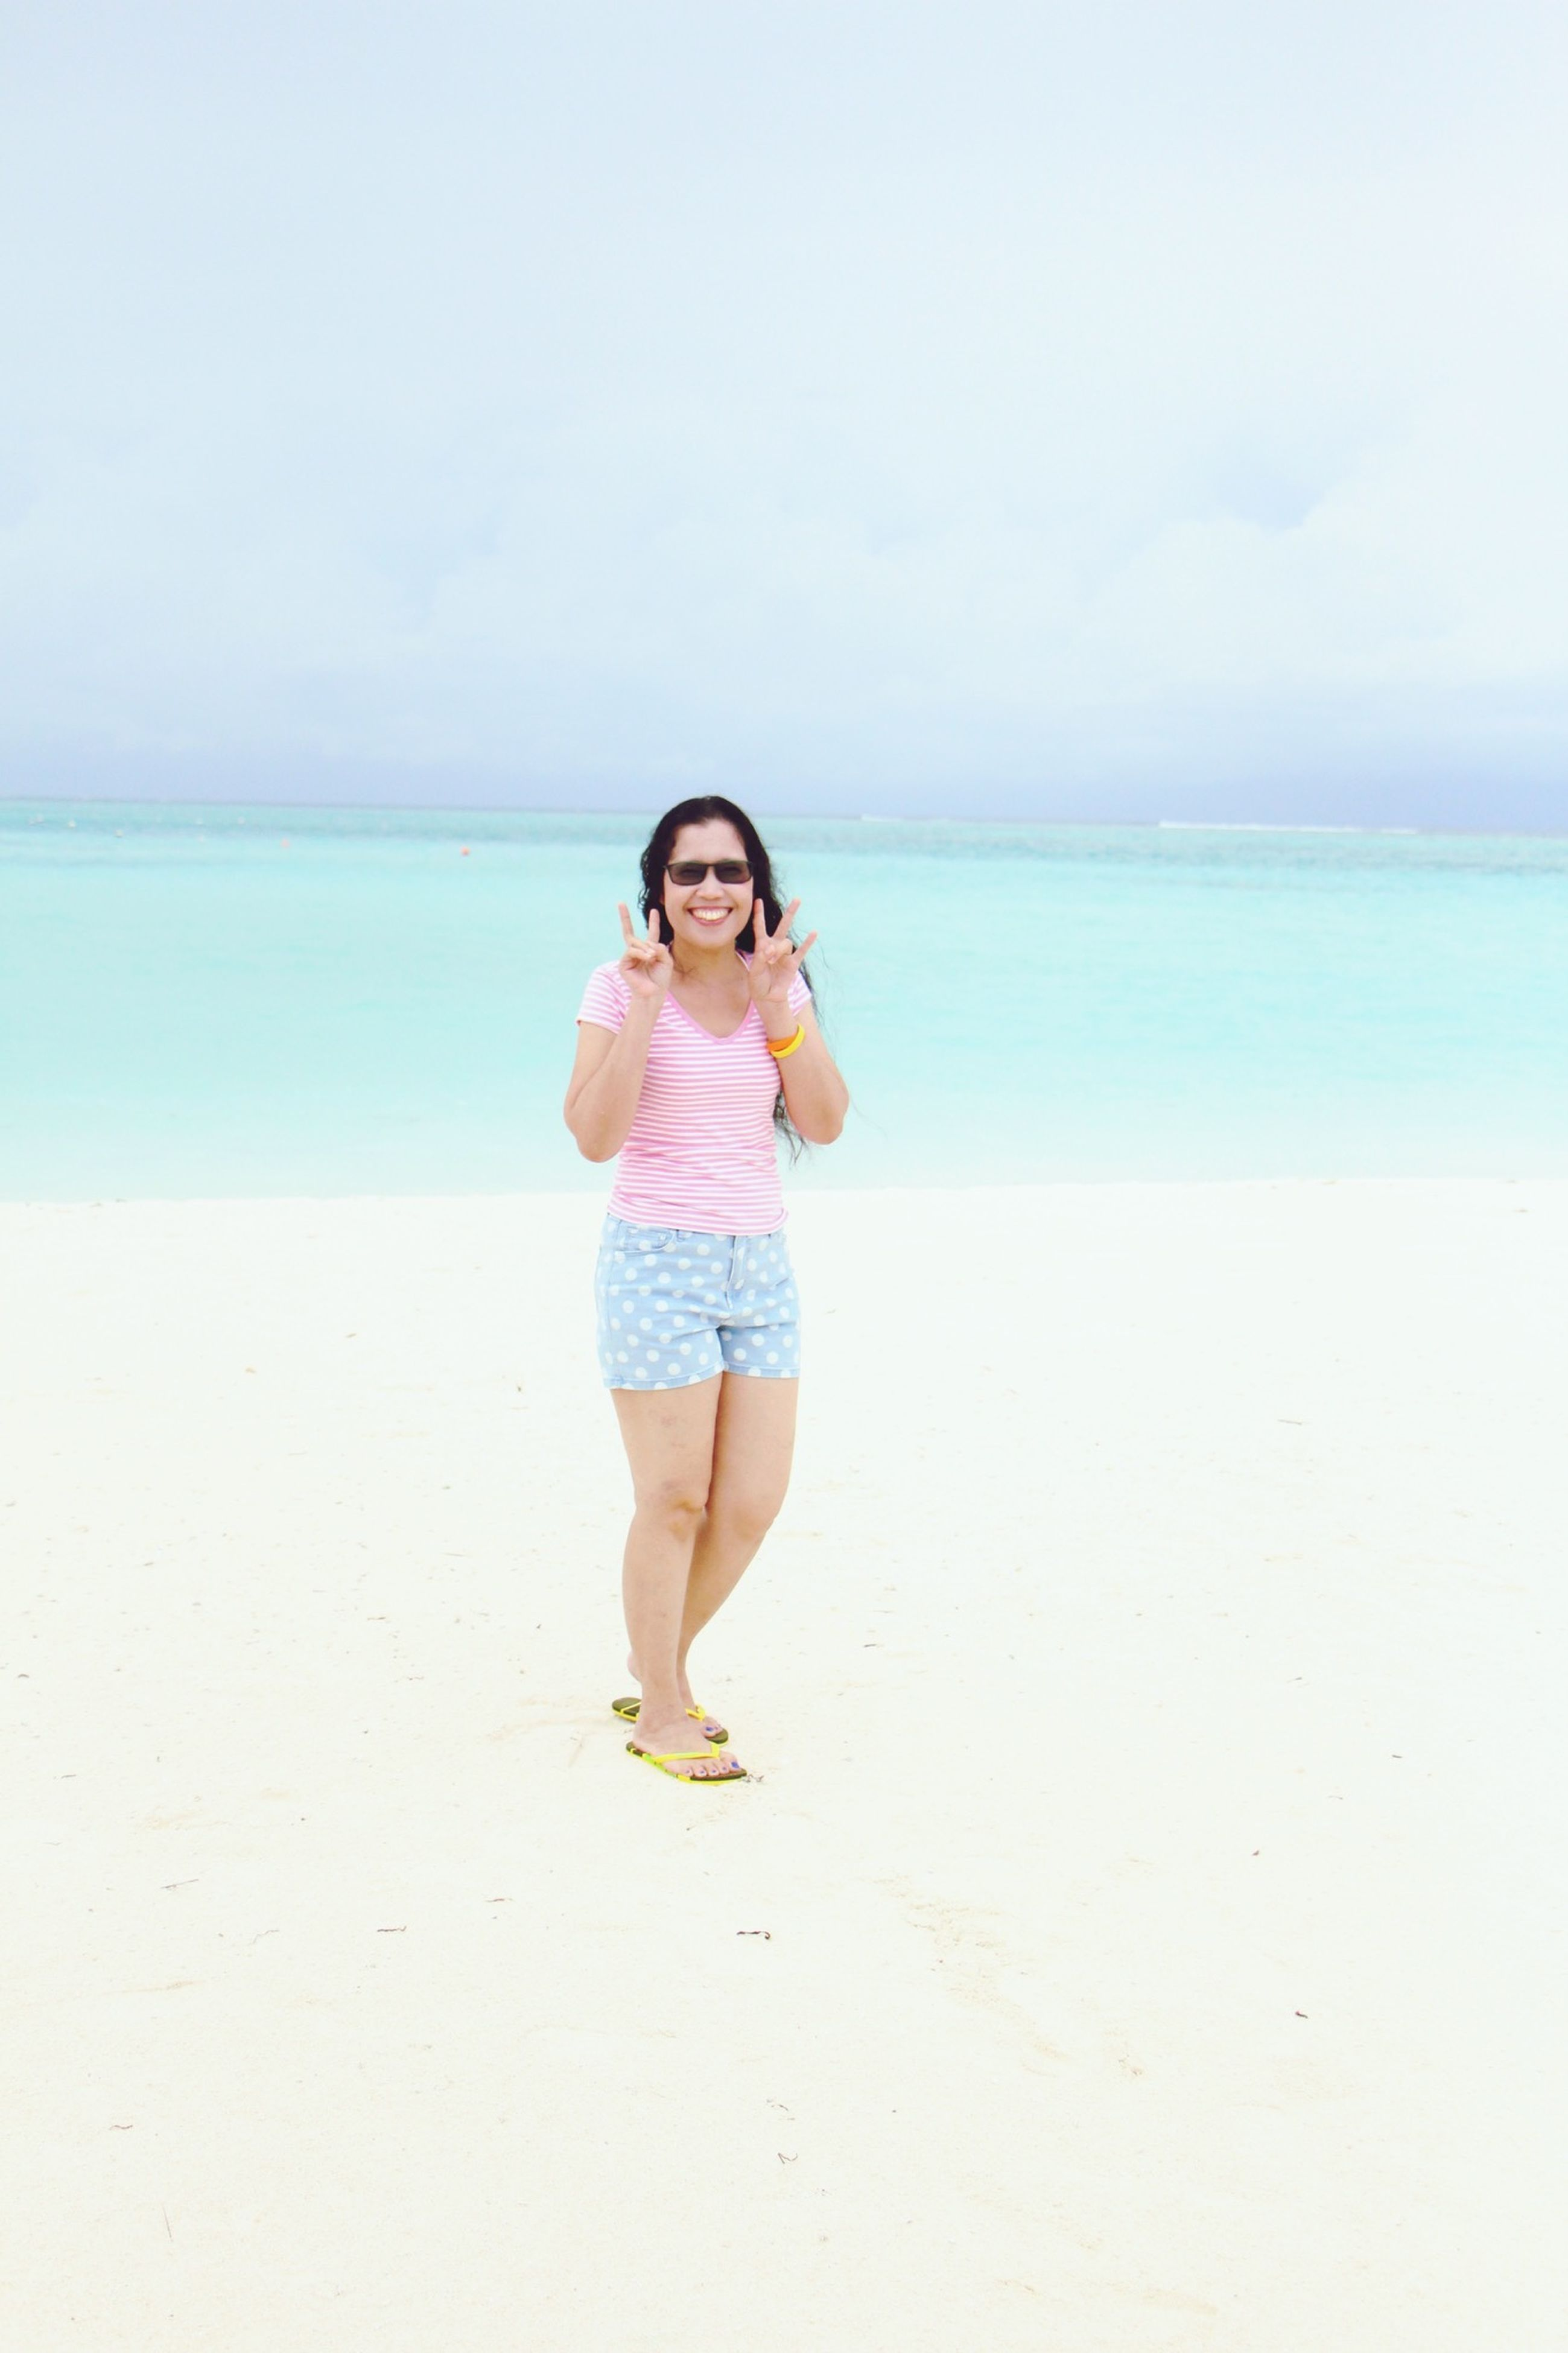 beach, full length, sea, casual clothing, water, horizon over water, lifestyles, shore, leisure activity, standing, person, sand, tranquility, young adult, copy space, tranquil scene, front view, beauty in nature